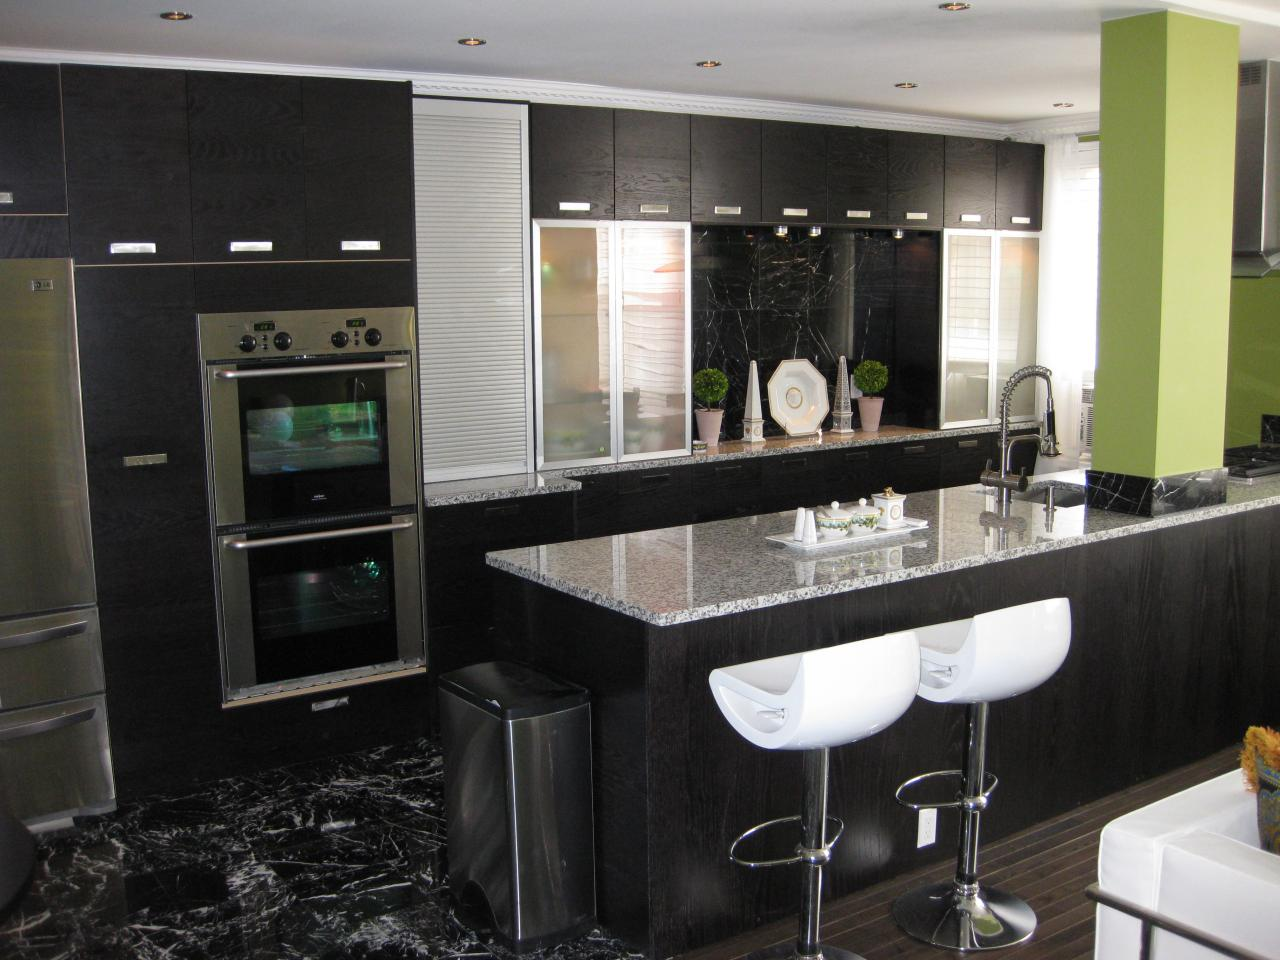 Small kitchen design ideas kitchen ideas design with - Black kitchen cabinets small kitchen ...